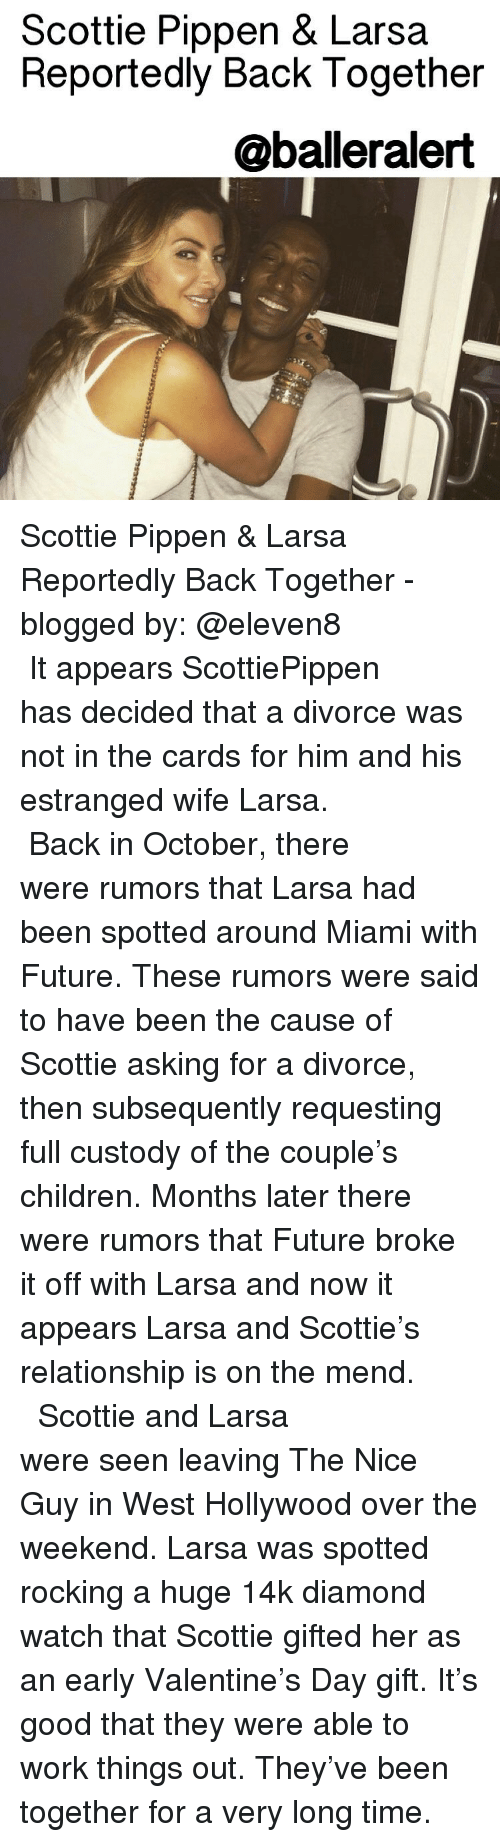 scottie pippen: Scottie Pippen & Larsa  Reportedly Back Together  @balleralert Scottie Pippen & Larsa Reportedly Back Together - blogged by: @eleven8 ⠀⠀⠀⠀⠀⠀⠀⠀⠀ ⠀⠀⠀⠀⠀⠀⠀⠀⠀ It appears ScottiePippen has decided that a divorce was not in the cards for him and his estranged wife Larsa. ⠀⠀⠀⠀⠀⠀⠀⠀⠀ ⠀⠀⠀⠀⠀⠀⠀⠀⠀ Back in October, there were rumors that Larsa had been spotted around Miami with Future. These rumors were said to have been the cause of Scottie asking for a divorce, then subsequently requesting full custody of the couple's children. Months later there were rumors that Future broke it off with Larsa and now it appears Larsa and Scottie's relationship is on the mend. ⠀⠀⠀⠀⠀⠀⠀⠀⠀ ⠀⠀⠀⠀⠀⠀⠀⠀⠀ Scottie and Larsa were seen leaving The Nice Guy in West Hollywood over the weekend. Larsa was spotted rocking a huge 14k diamond watch that Scottie gifted her as an early Valentine's Day gift. It's good that they were able to work things out. They've been together for a very long time.